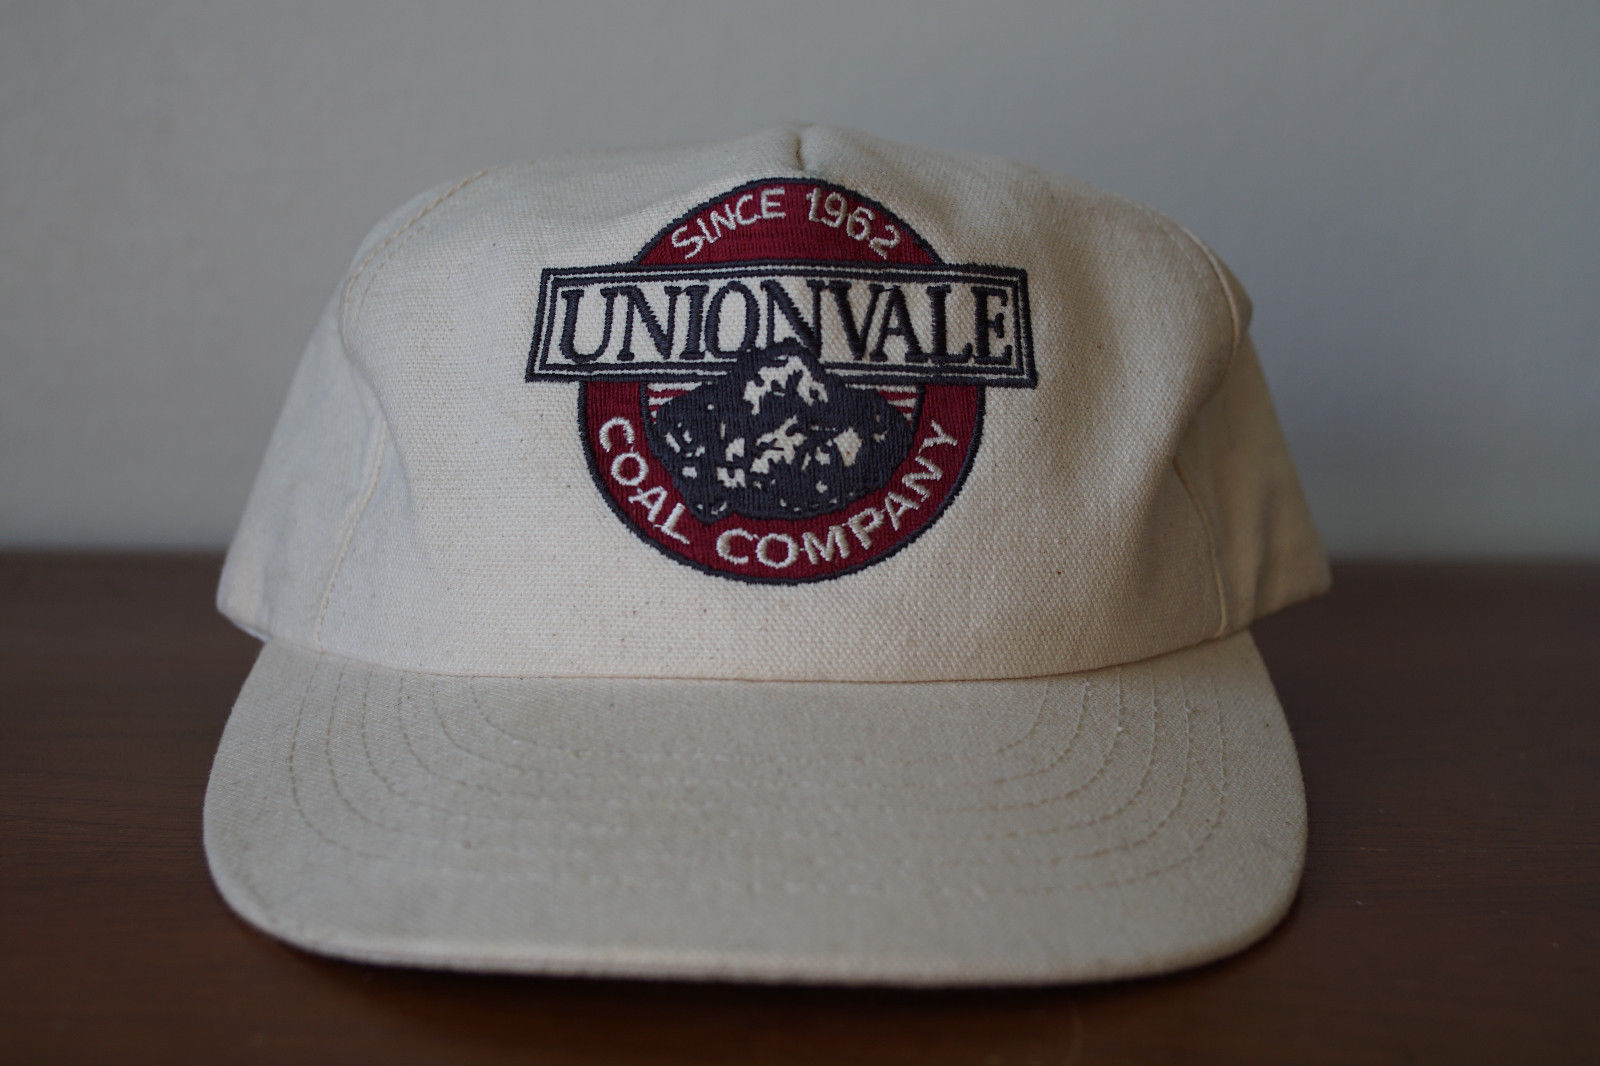 Vintage Unionvale Coal Company Embroidered Cotton Duck Snap Back Trucker Hat  USA -  24.14 39498305849e